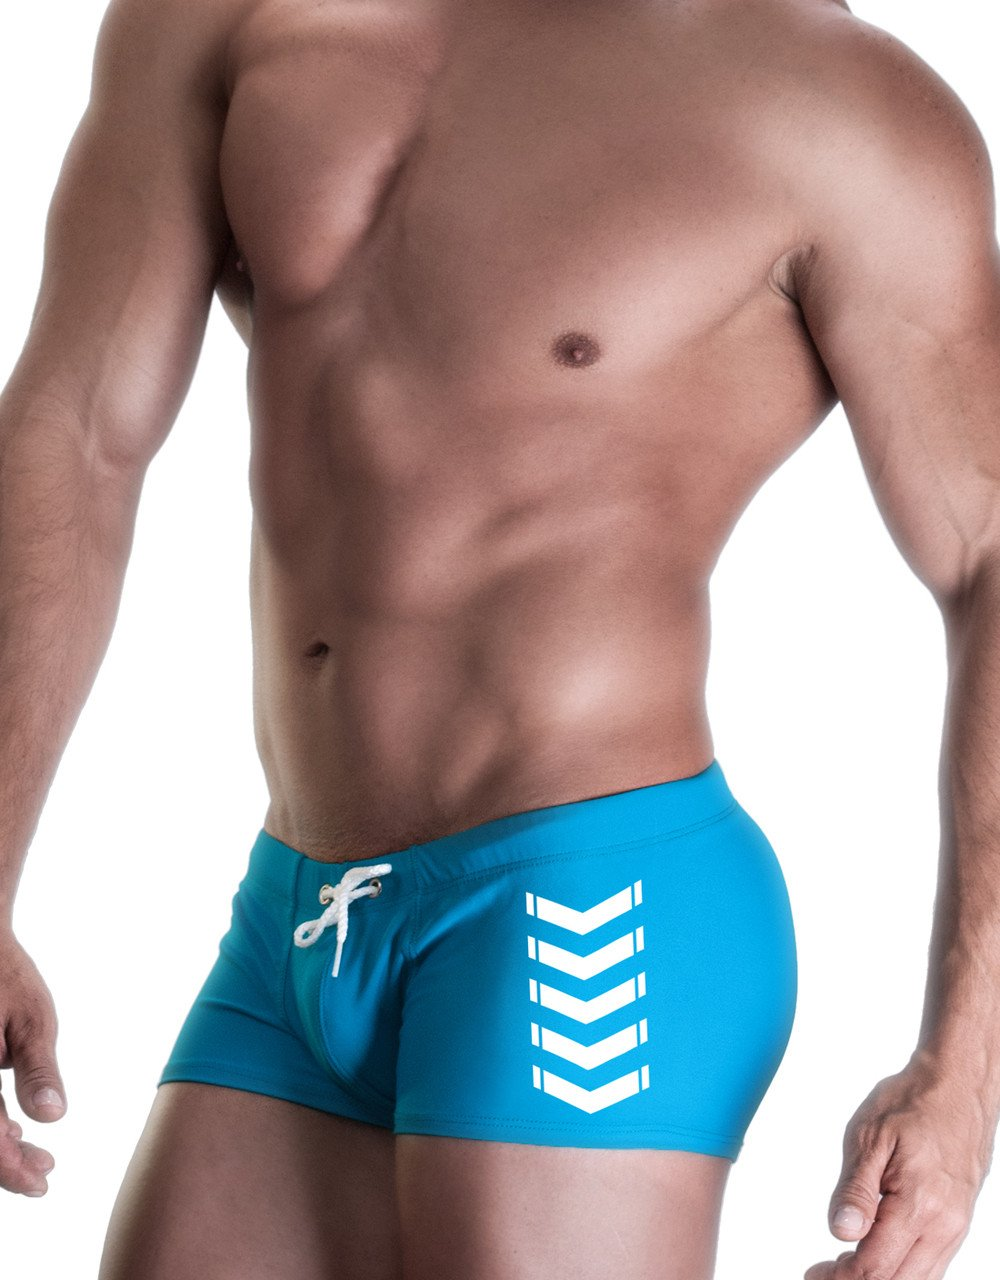 WildmanT CHEVRON SQUARE CUT SWIM BLUE - Big Penis Underwear, WildmanT - WildmanT